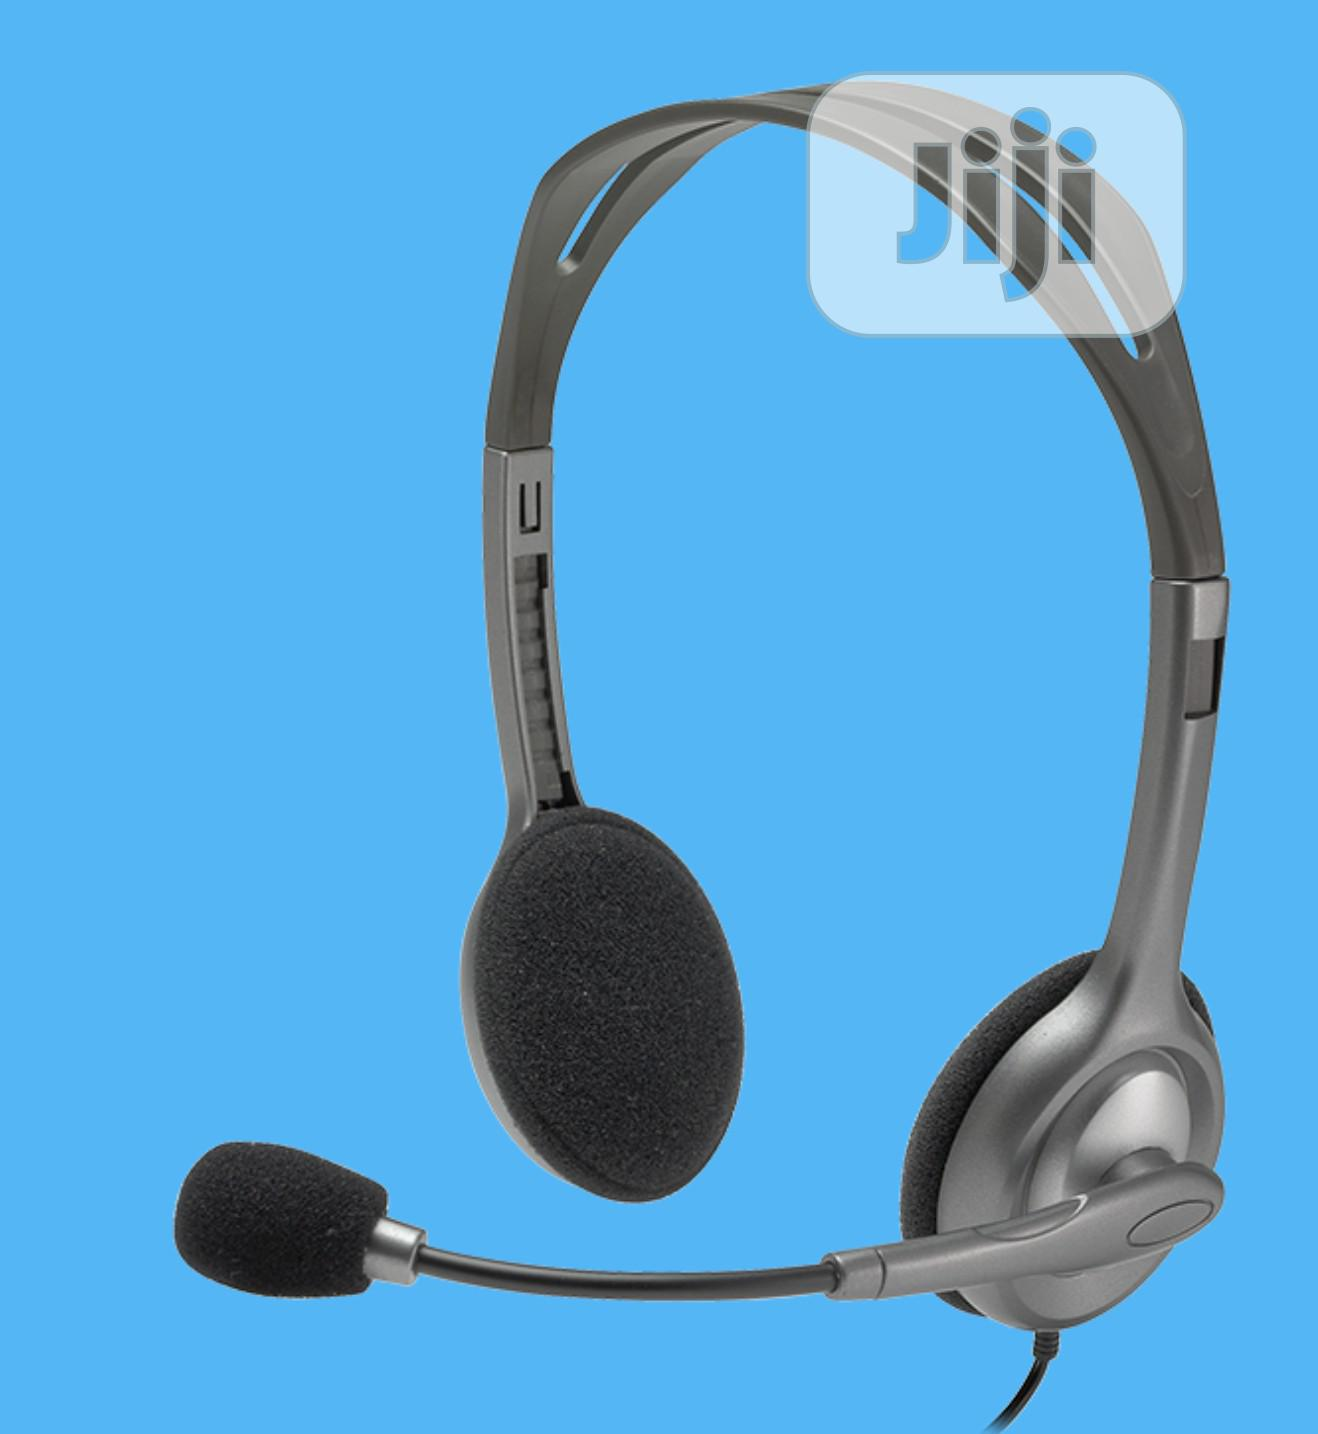 Archive: Logitech H110 Stereo Headset With Noise-cancelling